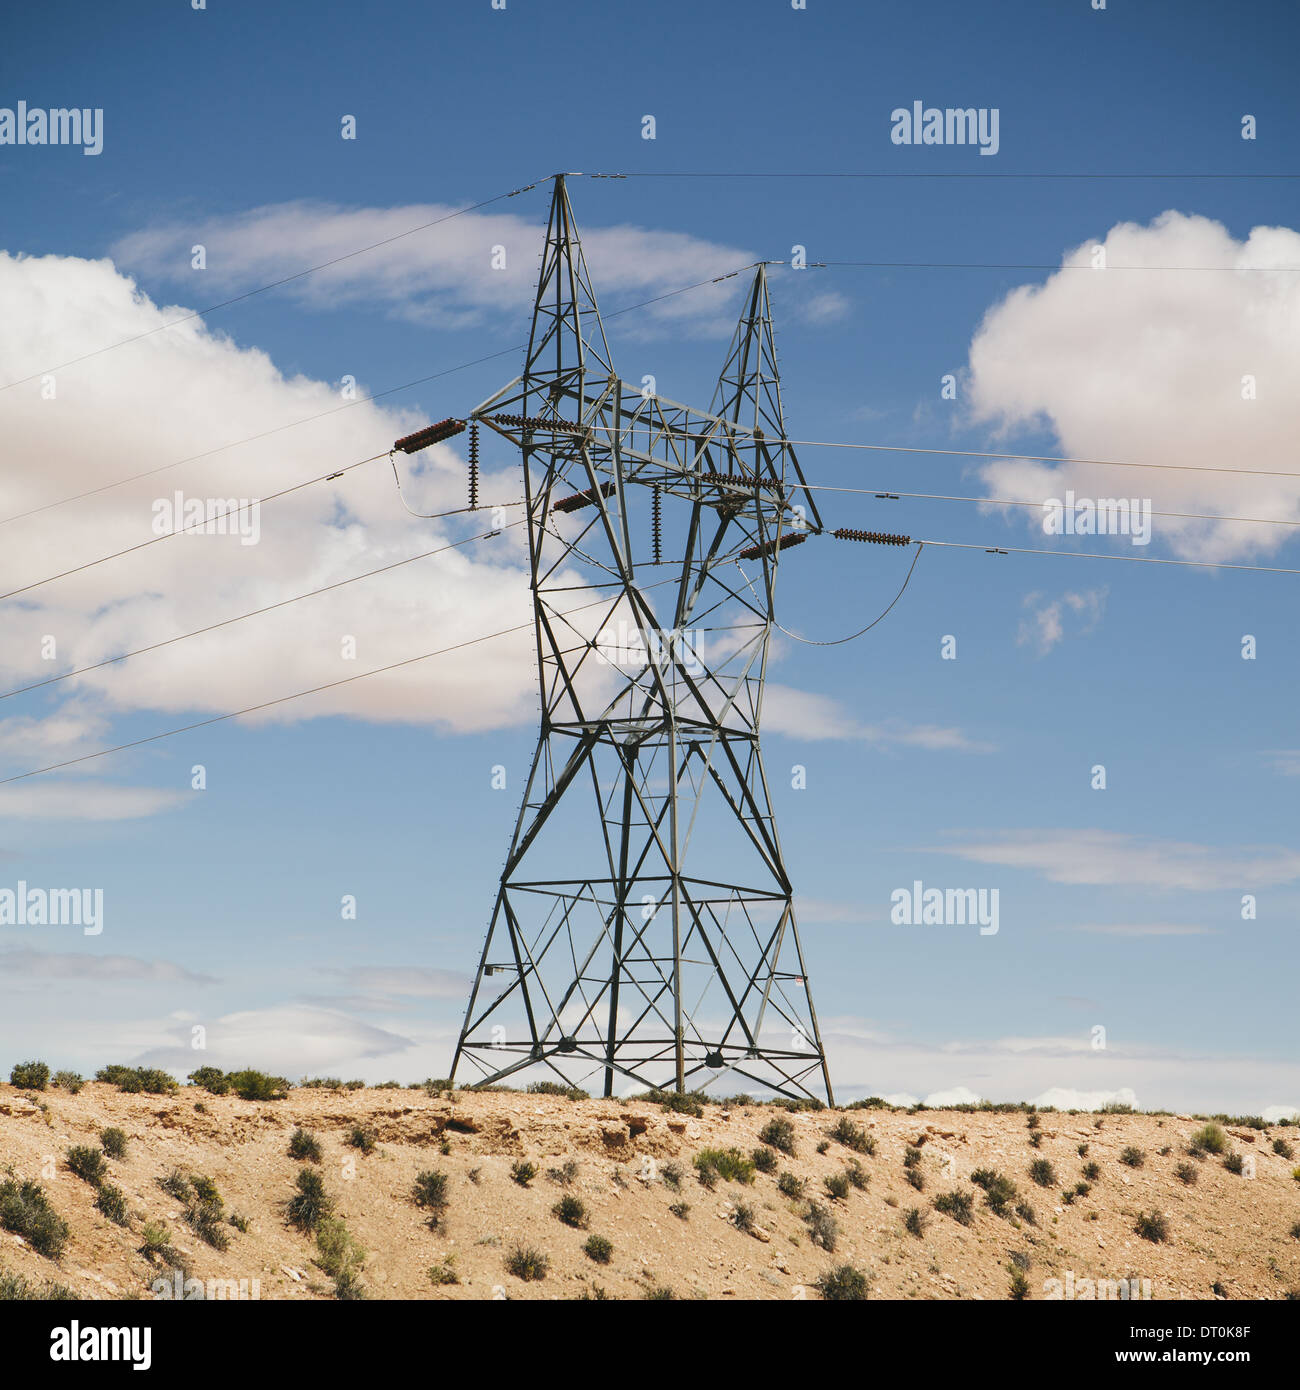 Tucson Arizona USA tall pylon carrying power lines in the desert - Stock Image